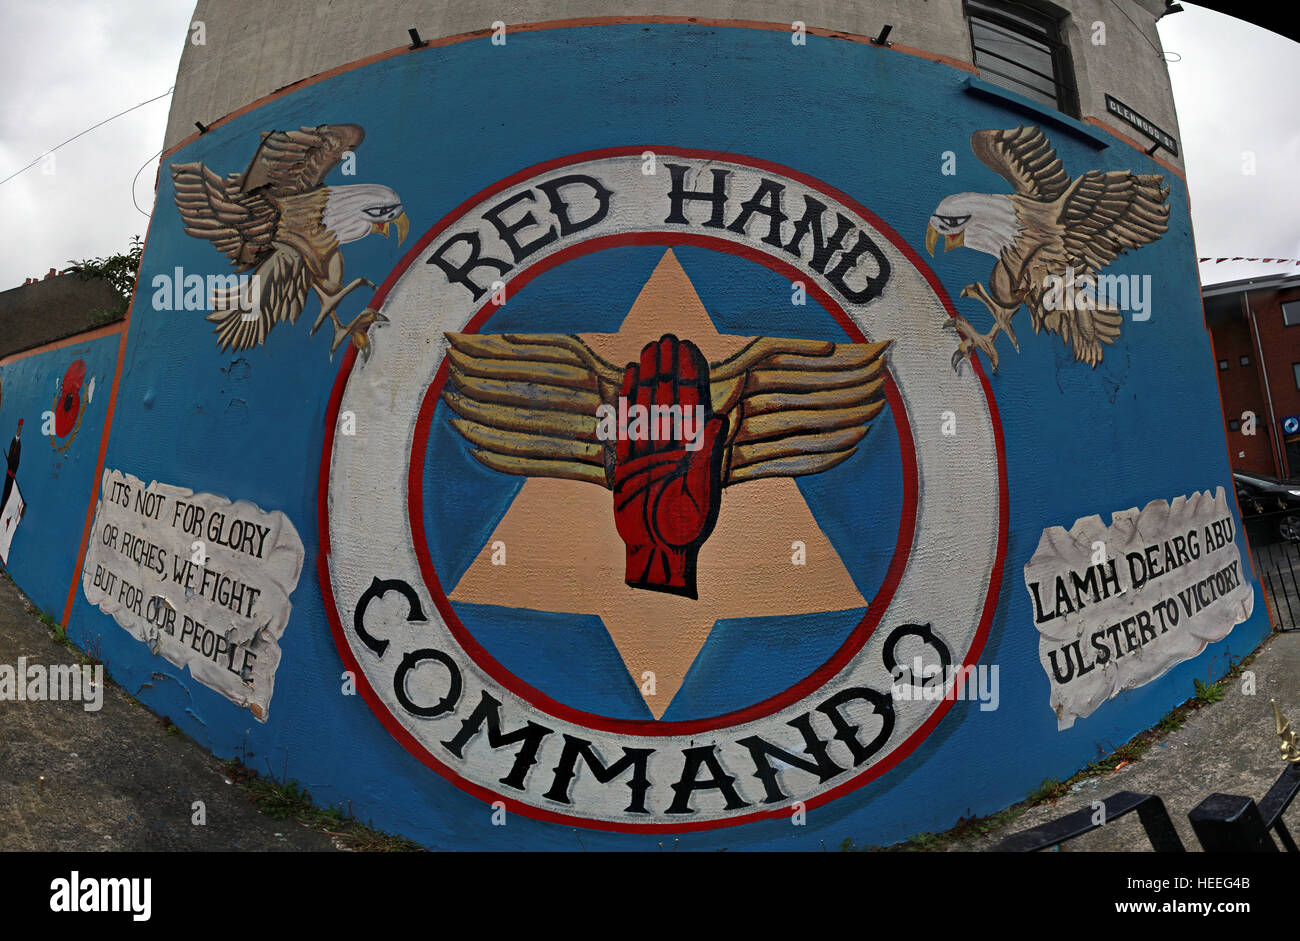 Mural,art,British,Union,wall,walls,gable end,gable,end,Northern,Irish,Republican,violence,para,military,paramilitary,fallen,Martyrs,martyr,street,rd,road,painting,painted,symbolism,Loyalist,culture,history,community,Ulster,Red hand,loyalist,royalist,Glenwood,St,its,not,for,glory,or,riches,we,fight,GoTonySmith,@HotpixUK,Tony,Smith,UK,GB,Great,Britain,United,Kingdom,Irish,British,Ireland,problem,with,problem with,issue with,NI,Northern,Northern Ireland,Belfast,City,Centre,Art,Artists,the,troubles,The Troubles,Good Friday Agreement,Peace,honour,painting,wall,walls,tribute,republicanism,Fight,Justice,West,Beal,feirste,martyrs,social,tour,tourism,tourists,urban,six,counties,6,backdrop,county,Antrim,Lamf,dearg,abu,Ulster,Victory,but,for,our,people,eagle,Belfast streets,Buy Pictures of,Buy Images Of,Images of,Stock Images,Tony Smith,United Kingdom,Great Britain,British Isles